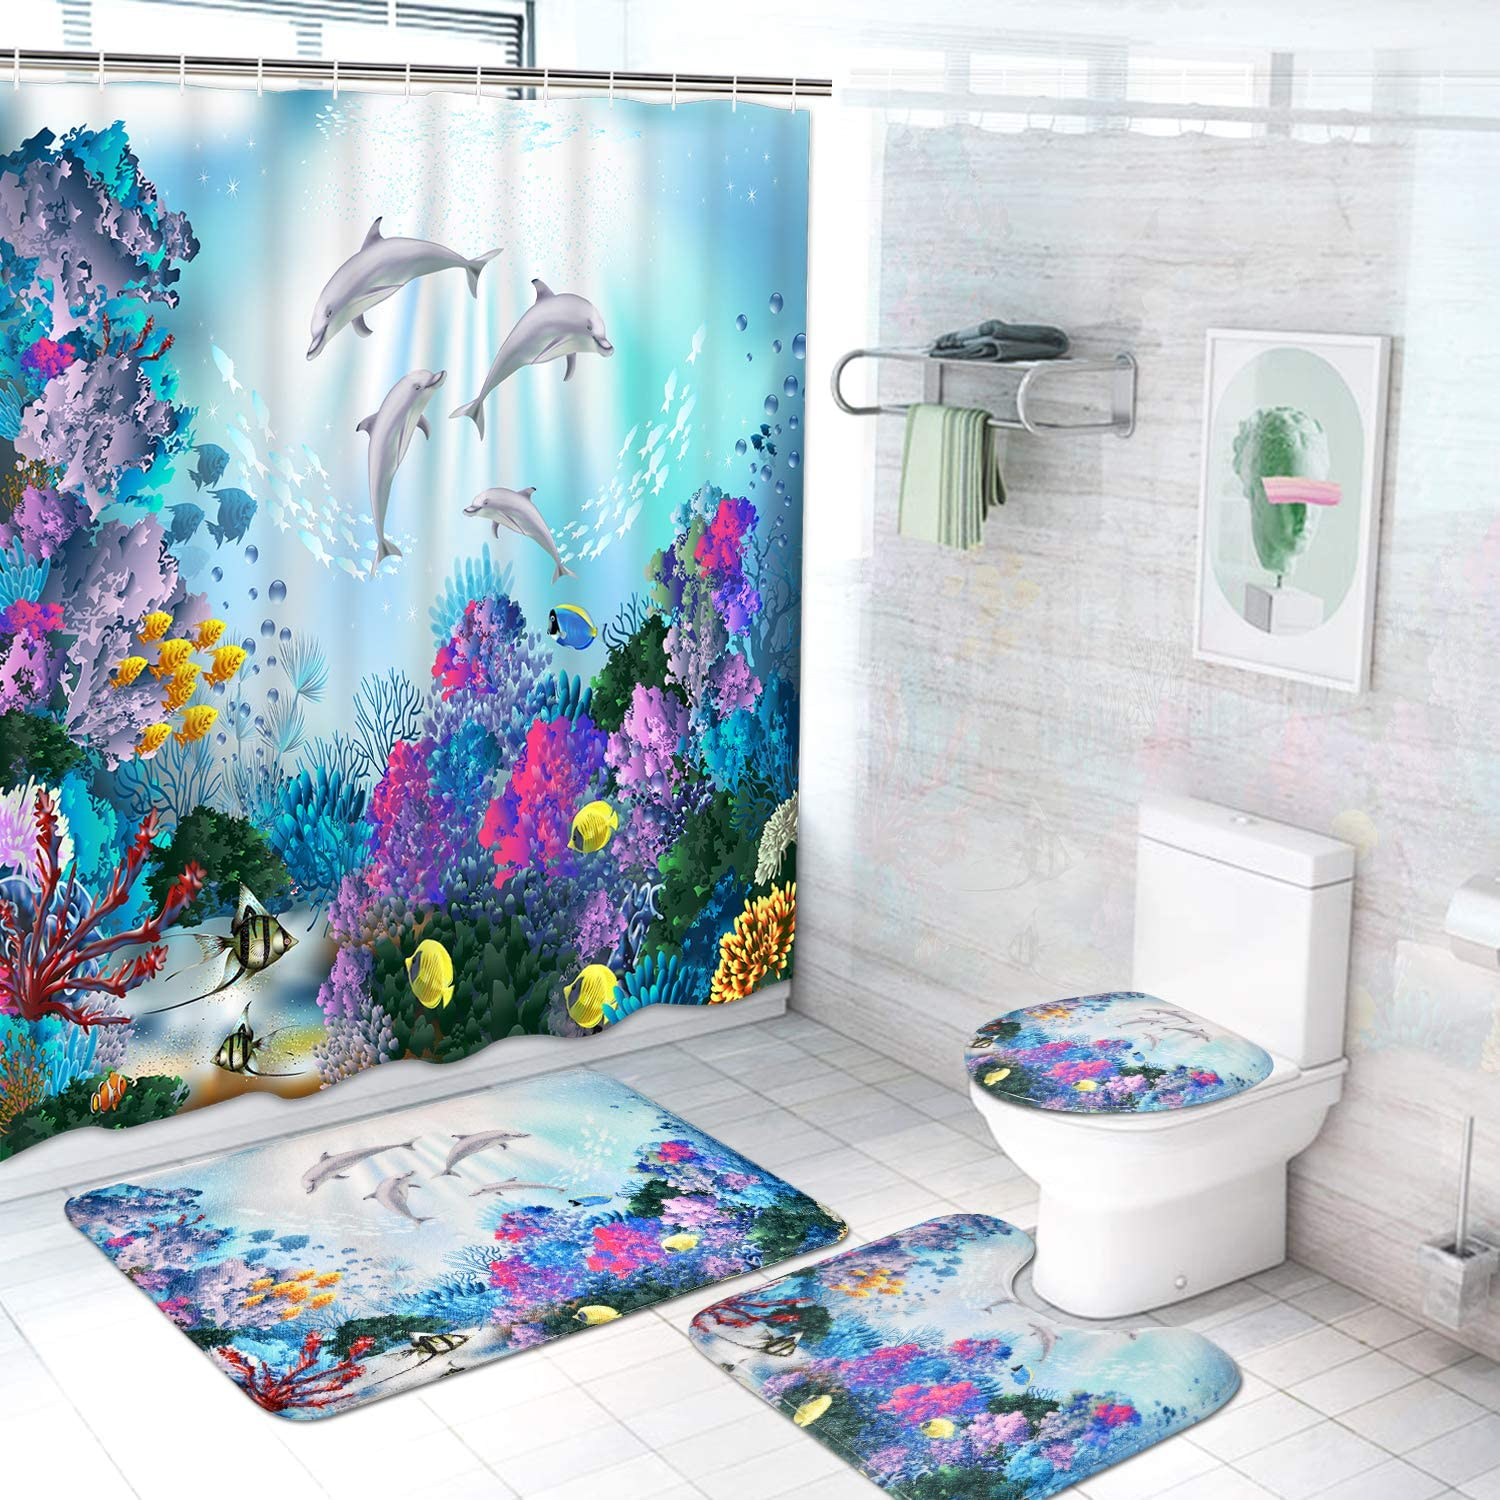 Ocean Creature Landscape Waterproof Shower Curtain Sets for Bathroom Toilet Lid Cover 4 Pcs Coral Dolphin Shower Curtain Set with Non-Slip Rug Bath Mat and 12 Hooks